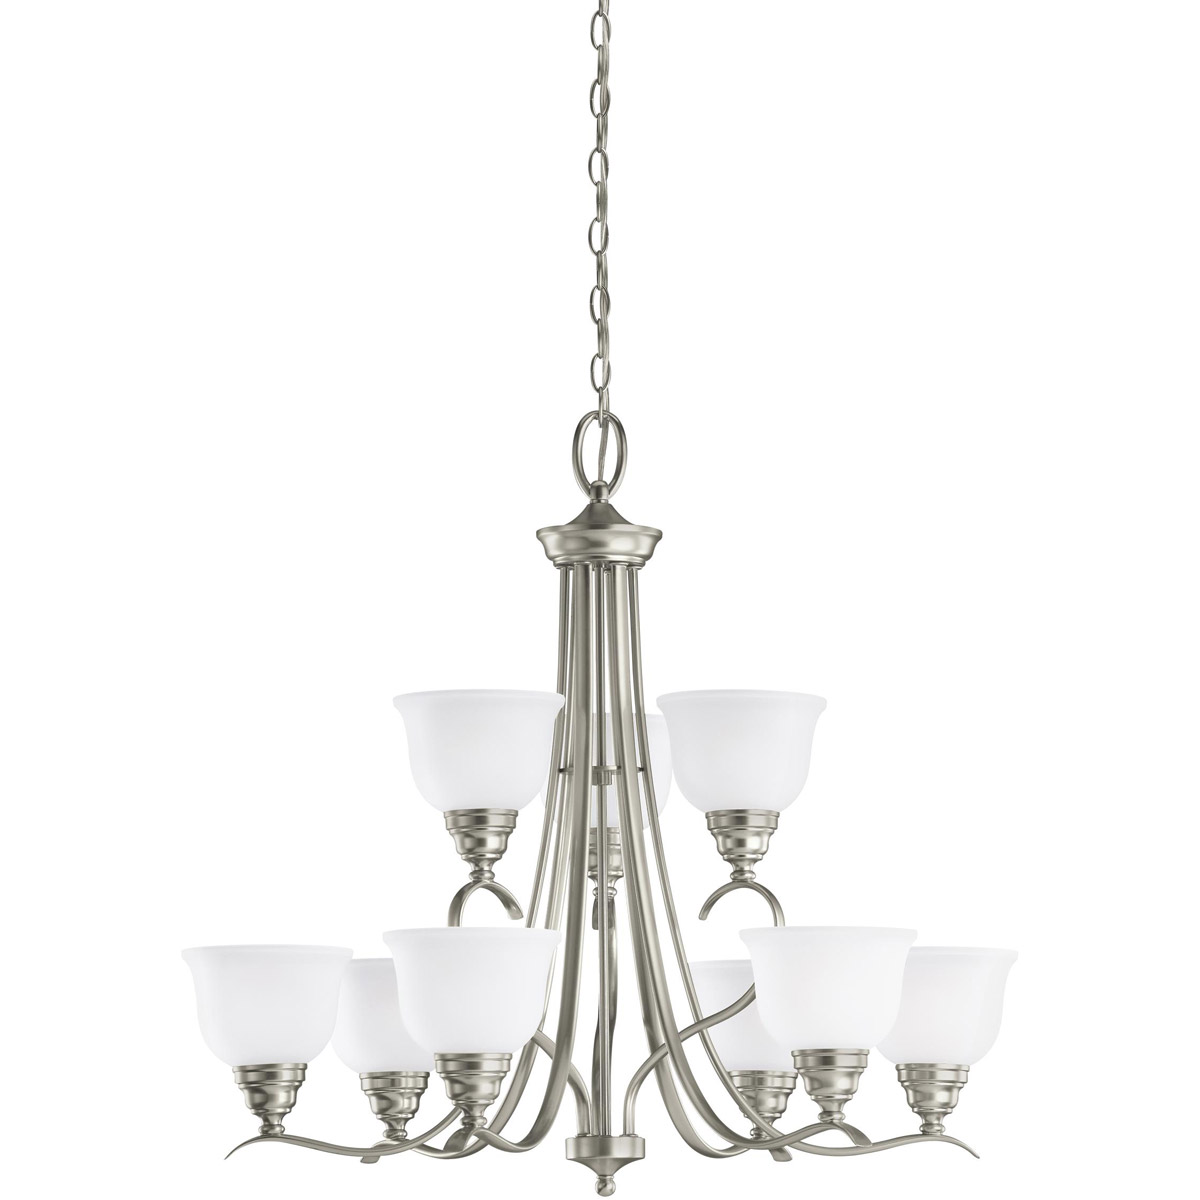 Sea Gull Lighting Wheaton 9 Light Chandelier in Brushed Nickel 31627-962 photo